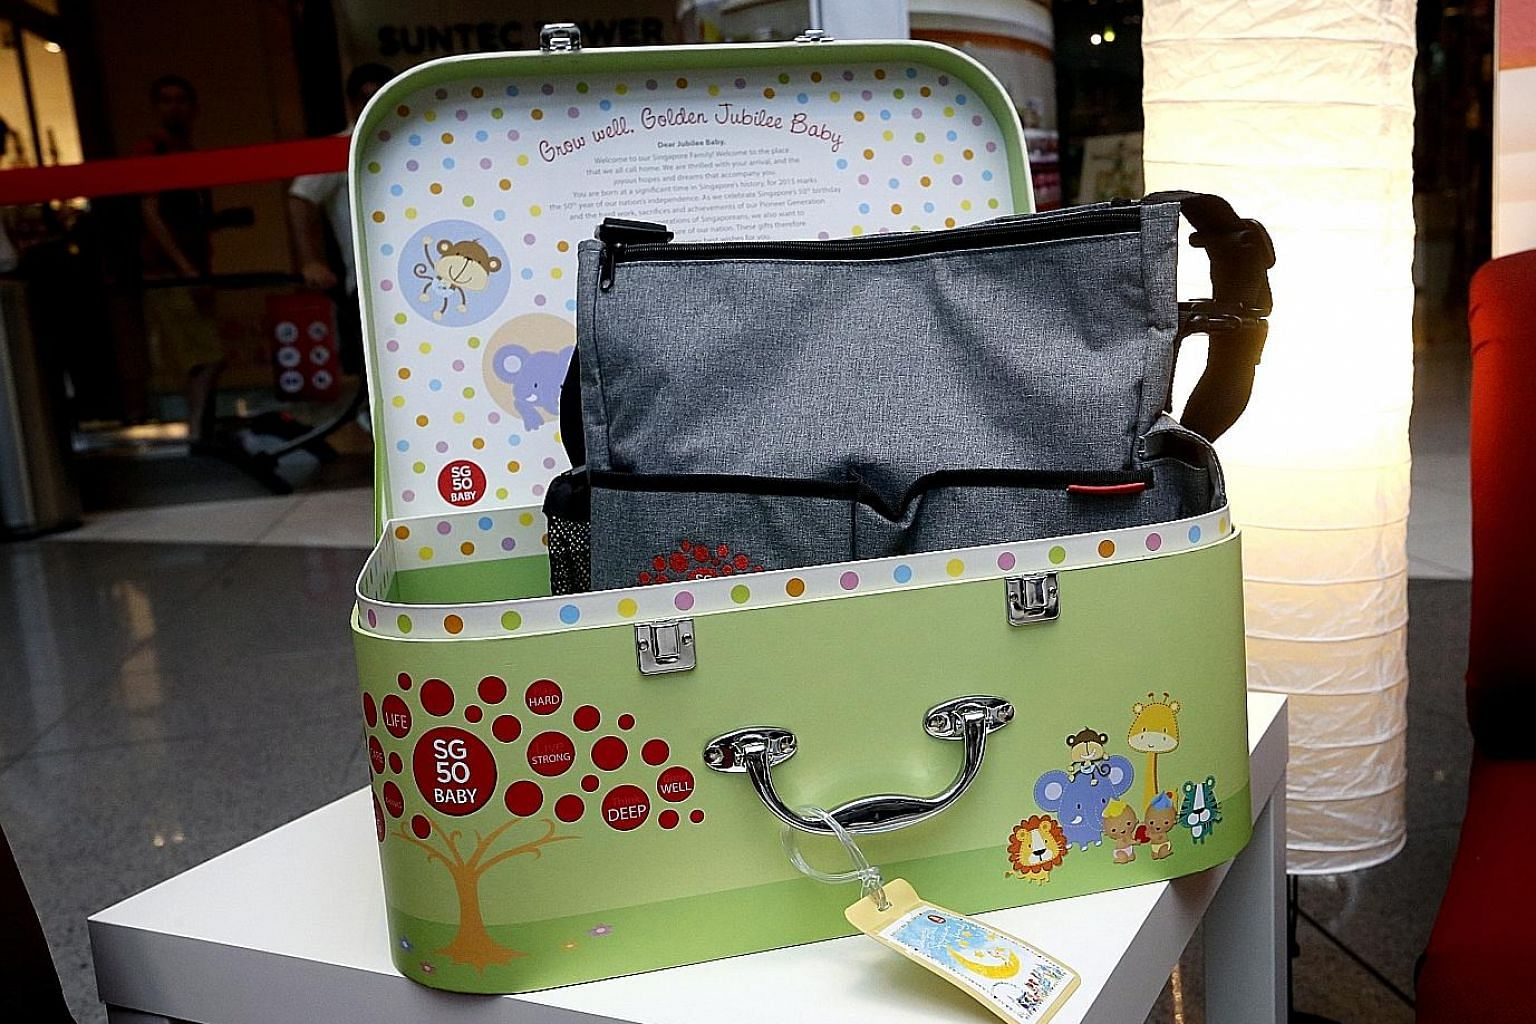 One of the eight items - a diaper bag - in the SG50 Baby Jubilee Gift suitcase. Parents of about 340 babies born in 2015 and eligible for the gift have not registered to receive it.